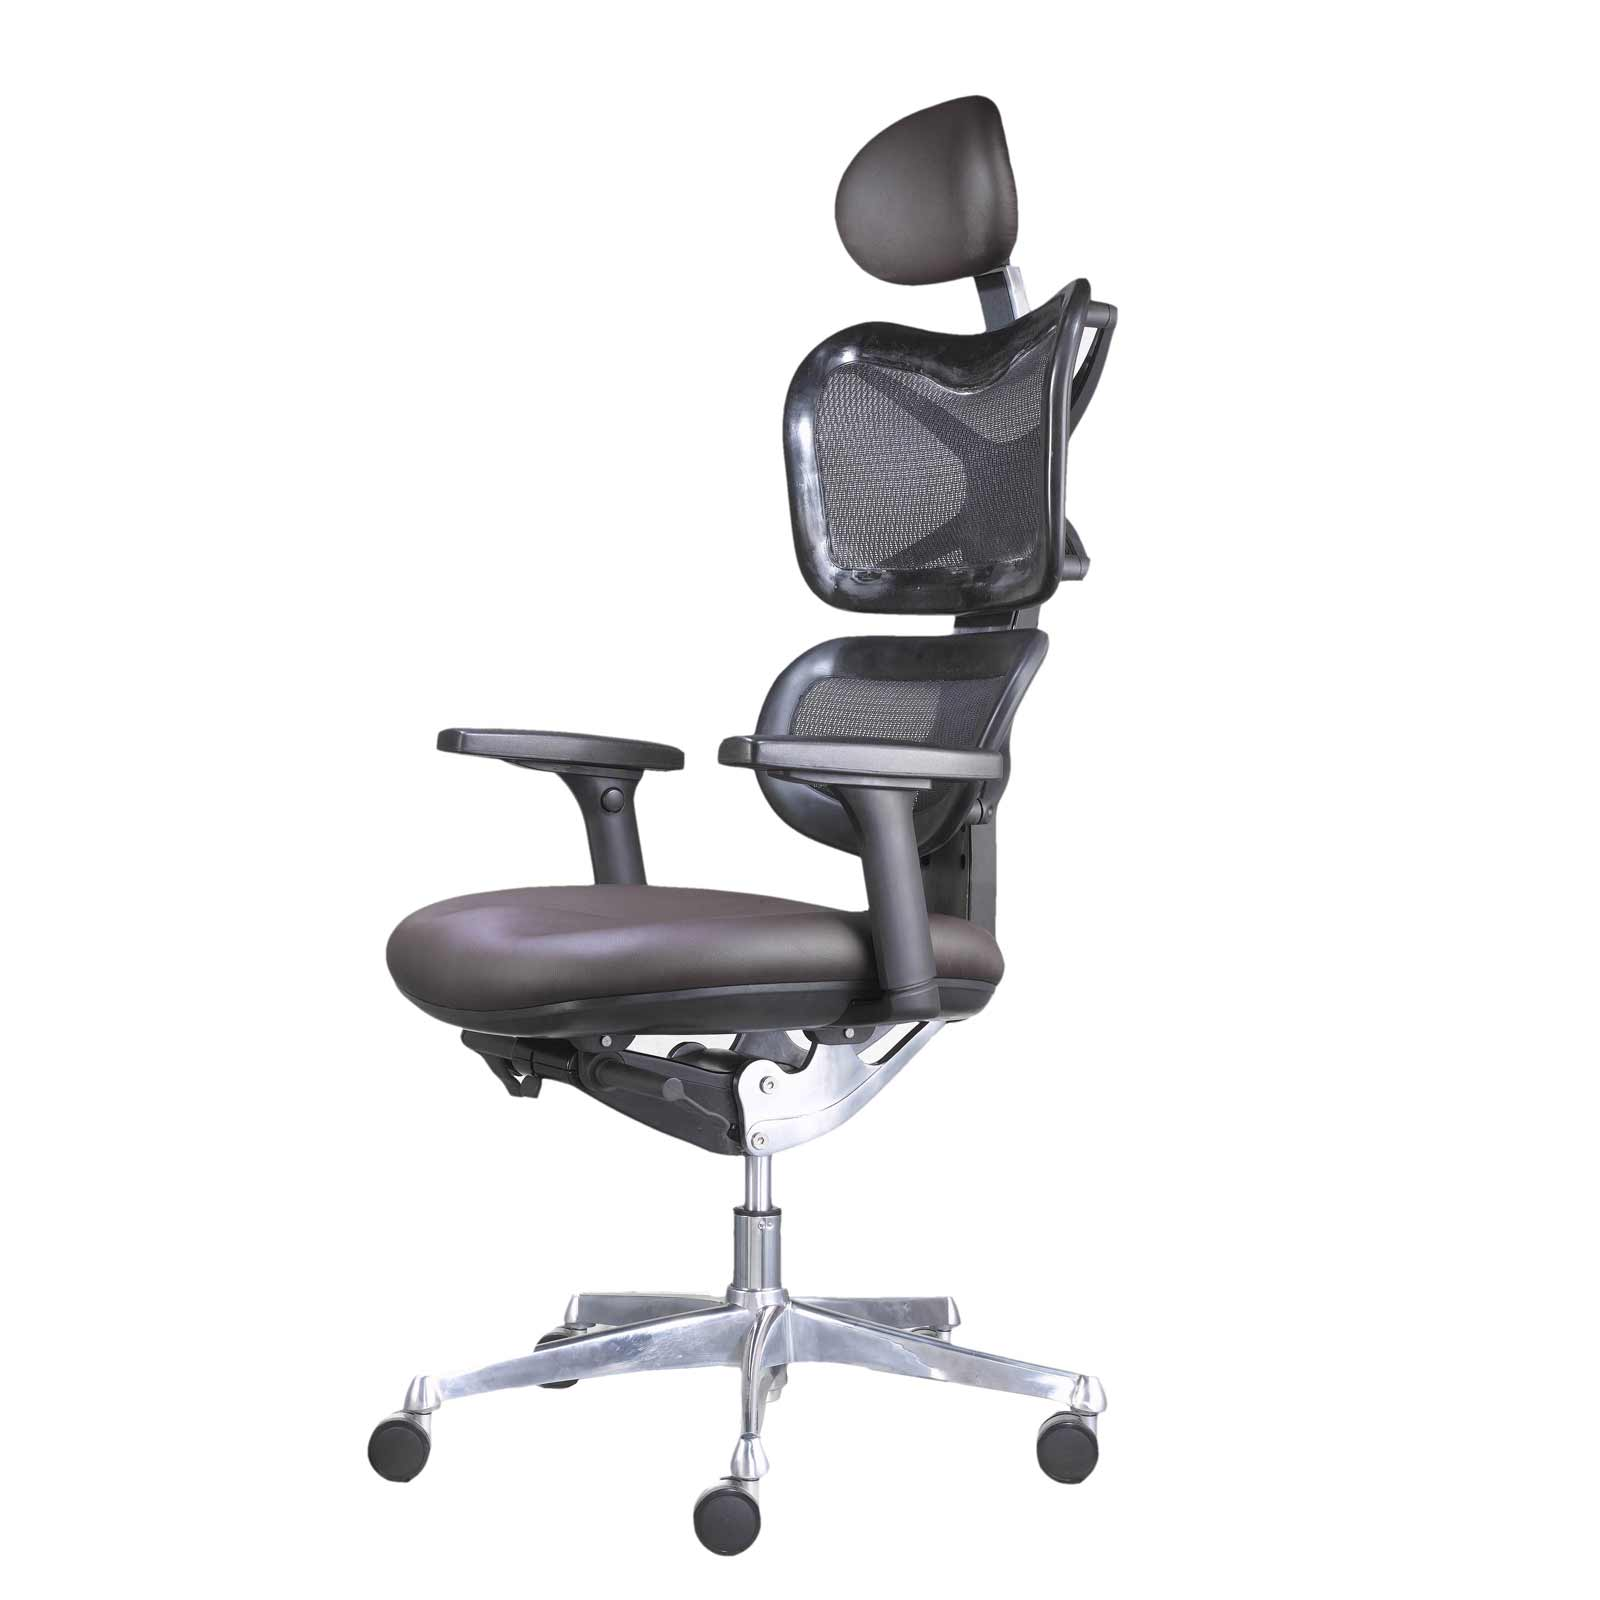 Office chair computer chair executive chair office furniture for Contemporary office chairs modern